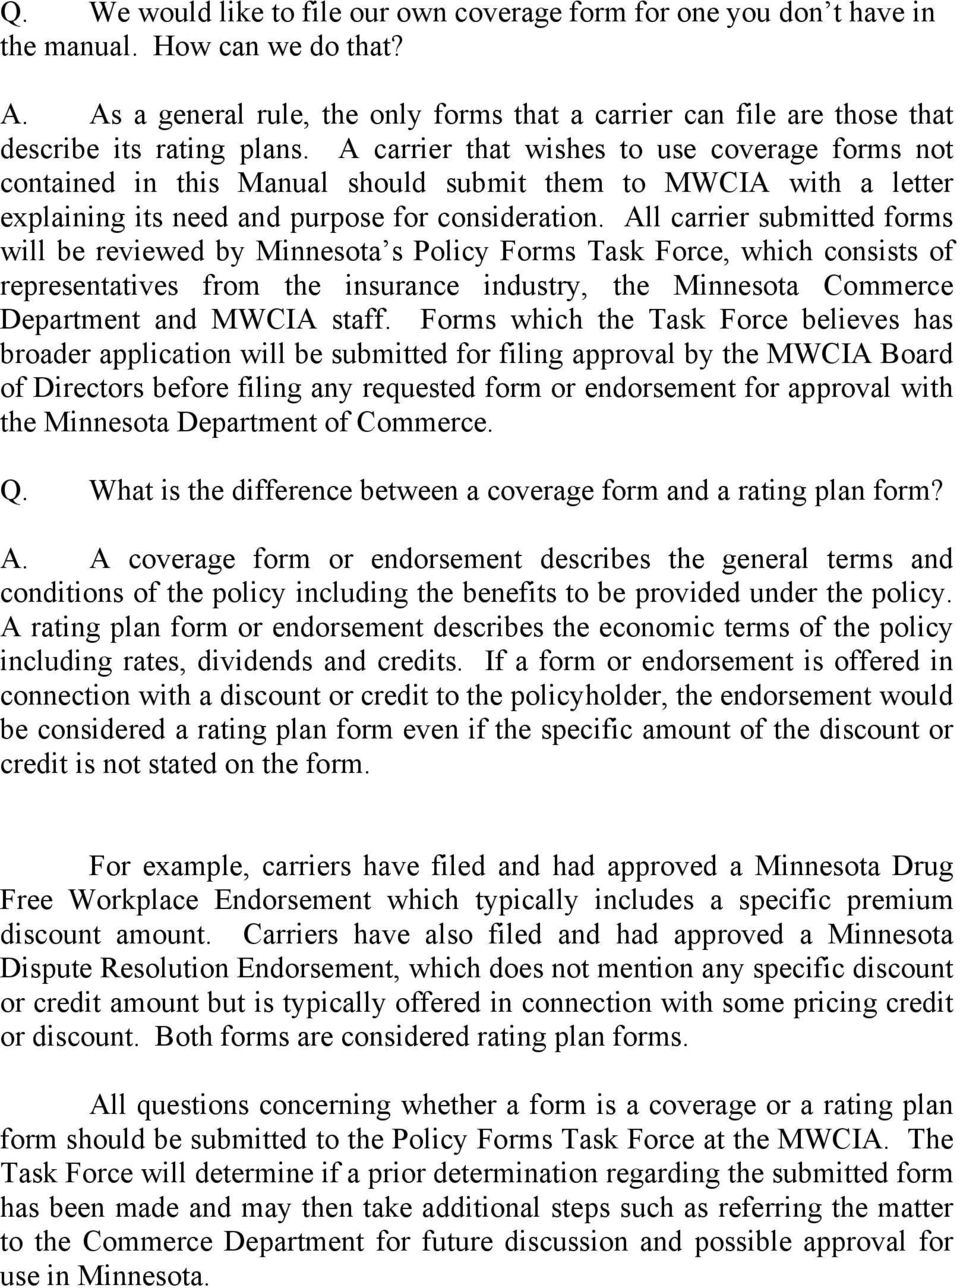 A carrier that wishes to use coverage forms not contained in this Manual should submit them to MWCIA with a letter explaining its need and purpose for consideration.